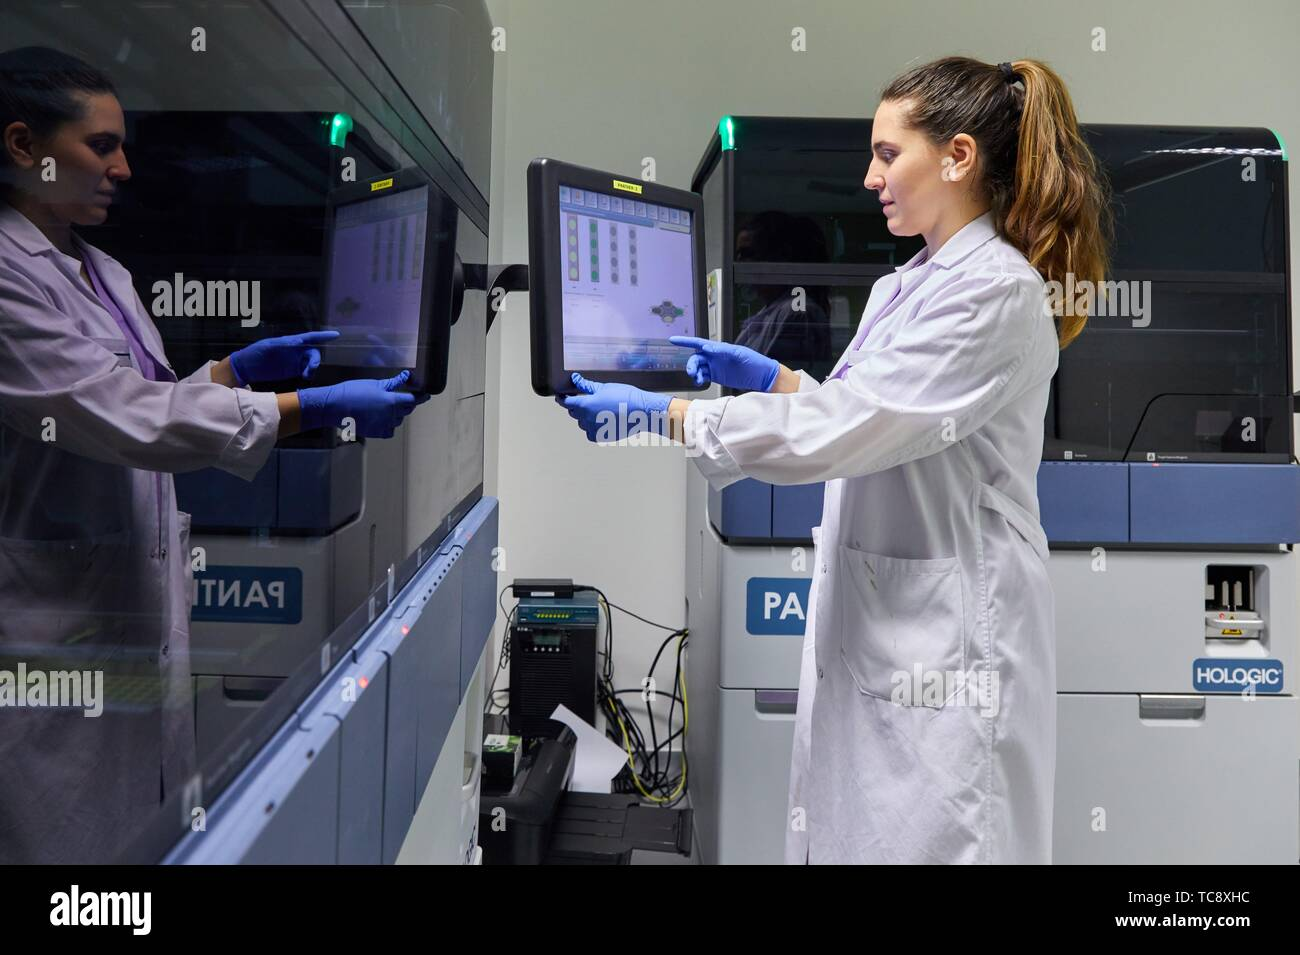 Integrated solutions for molecular tests in the diagnostic laboratory, Cervical cancer screening program. The cervix is the lower part of the uterus. - Stock Image